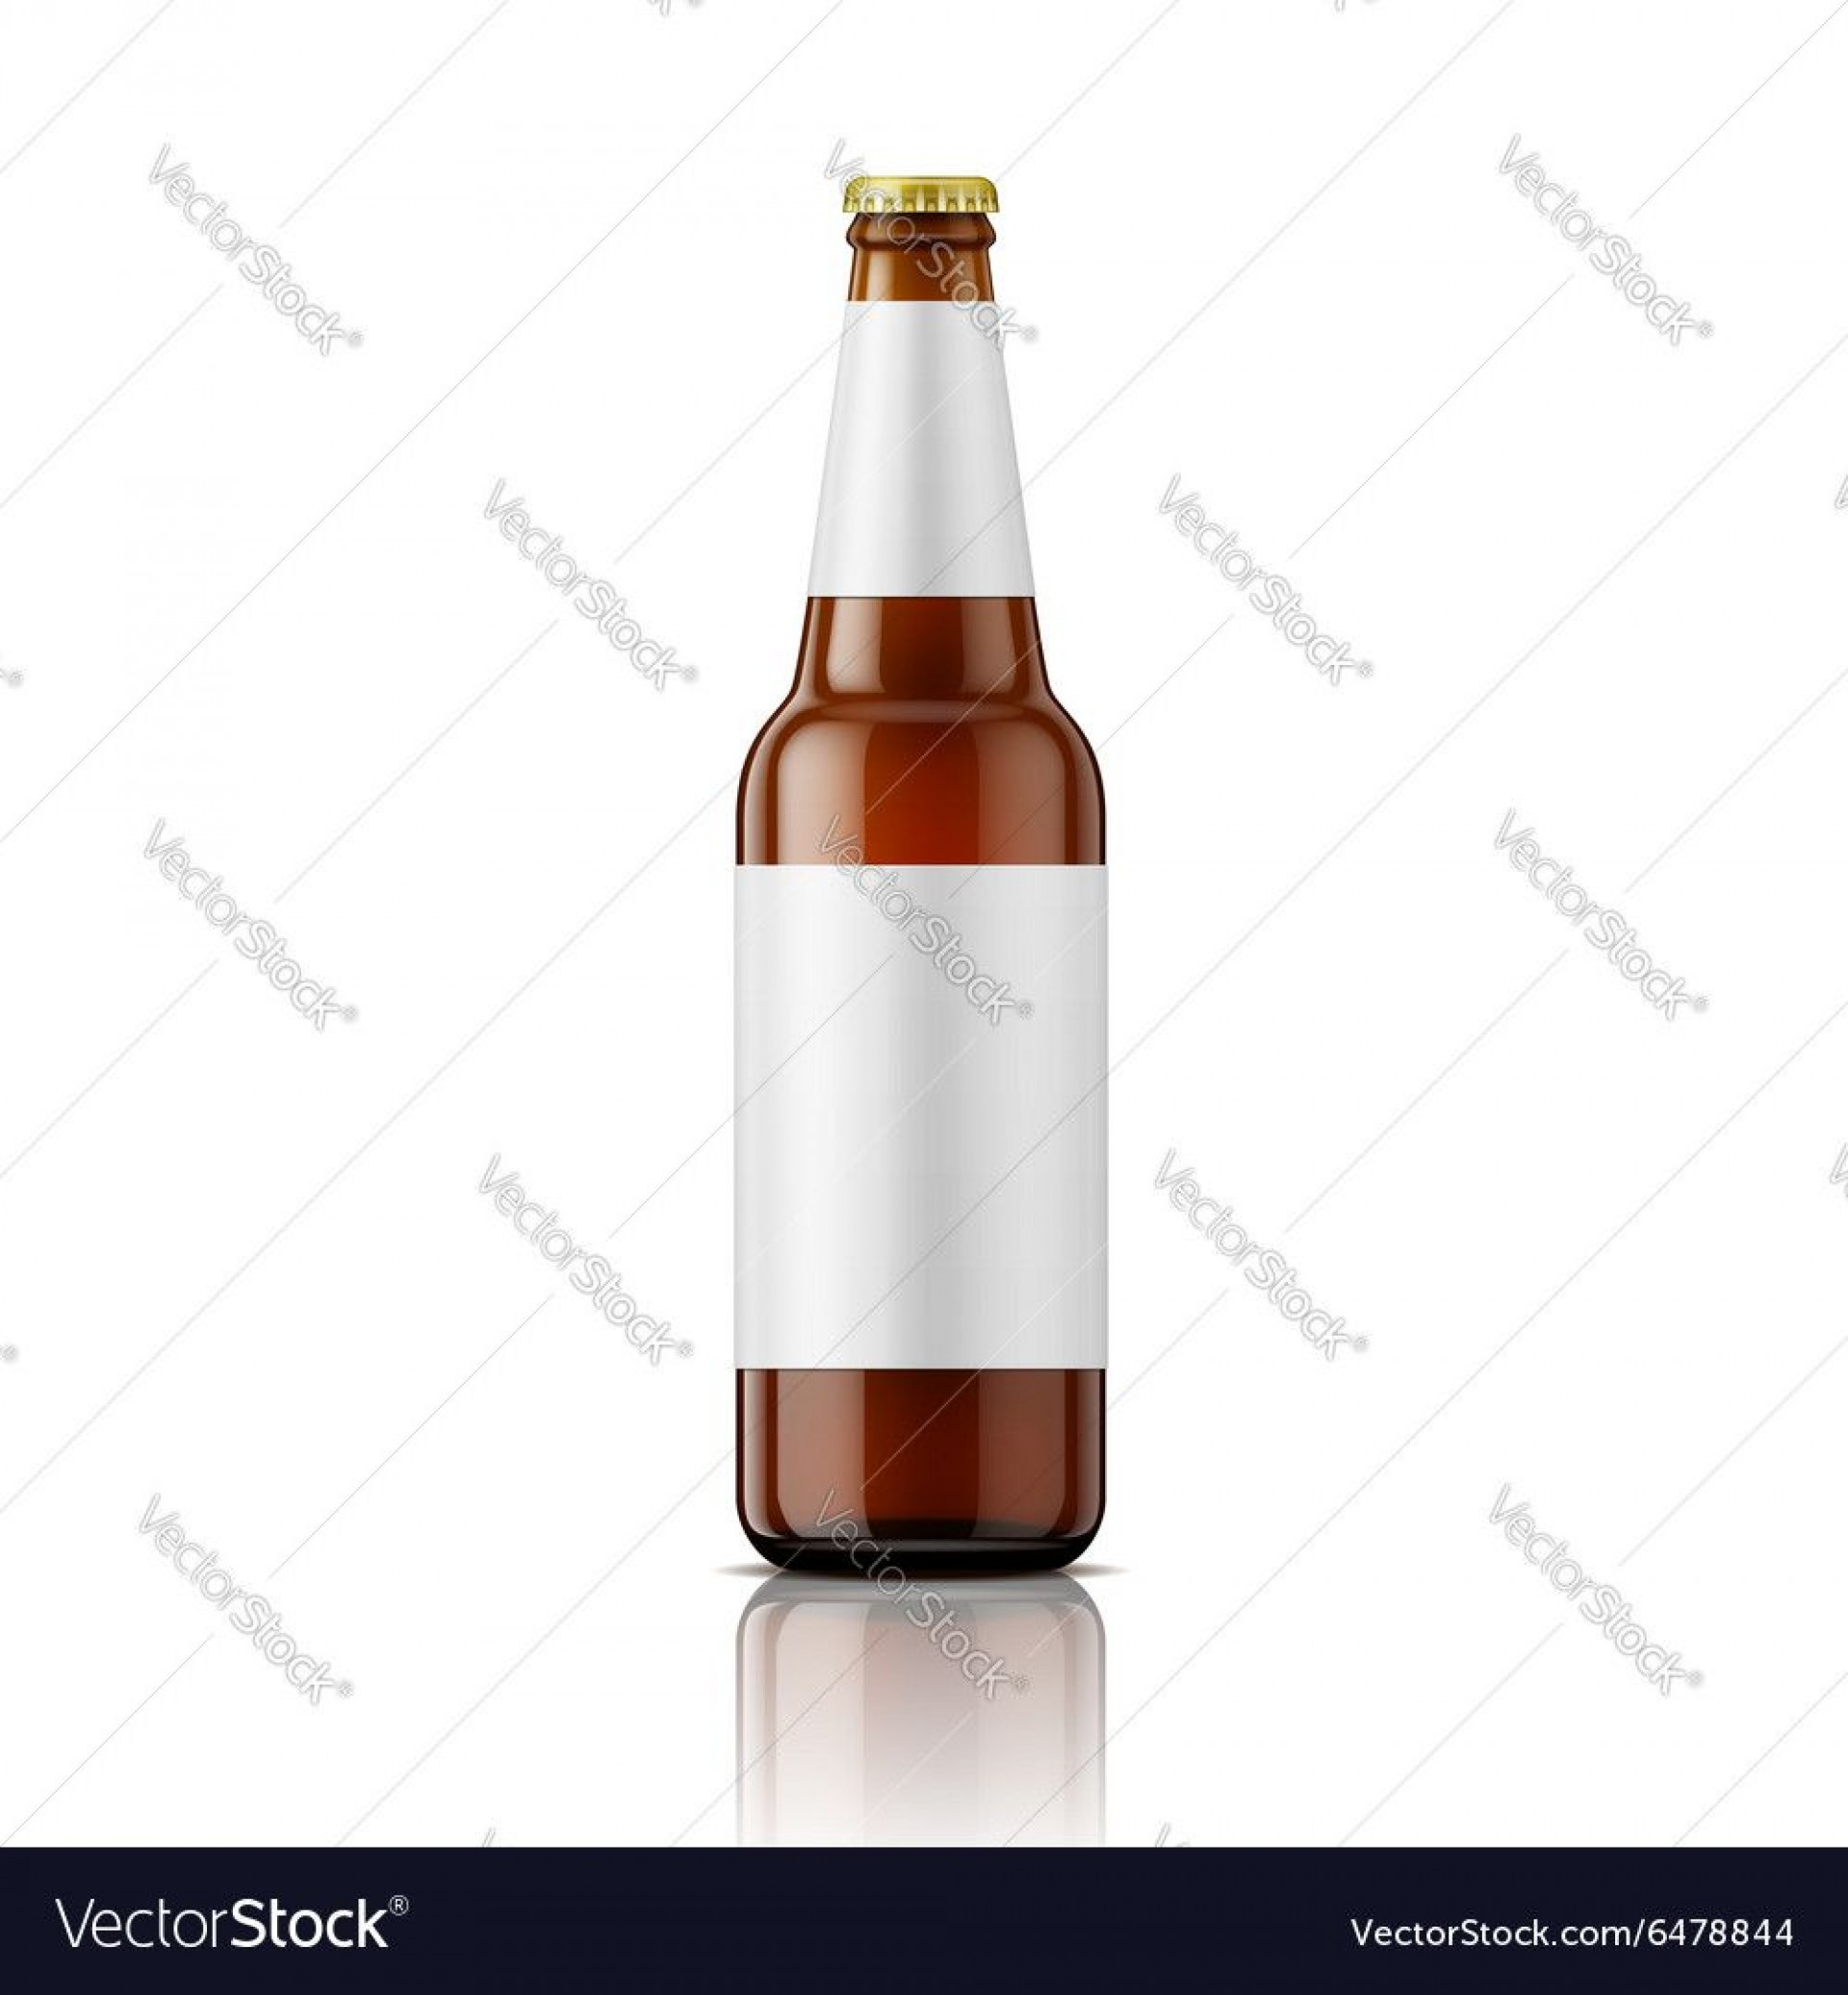 008 Amazing Beer Bottle Label Template Highest Clarity  Free Dimension Word1920